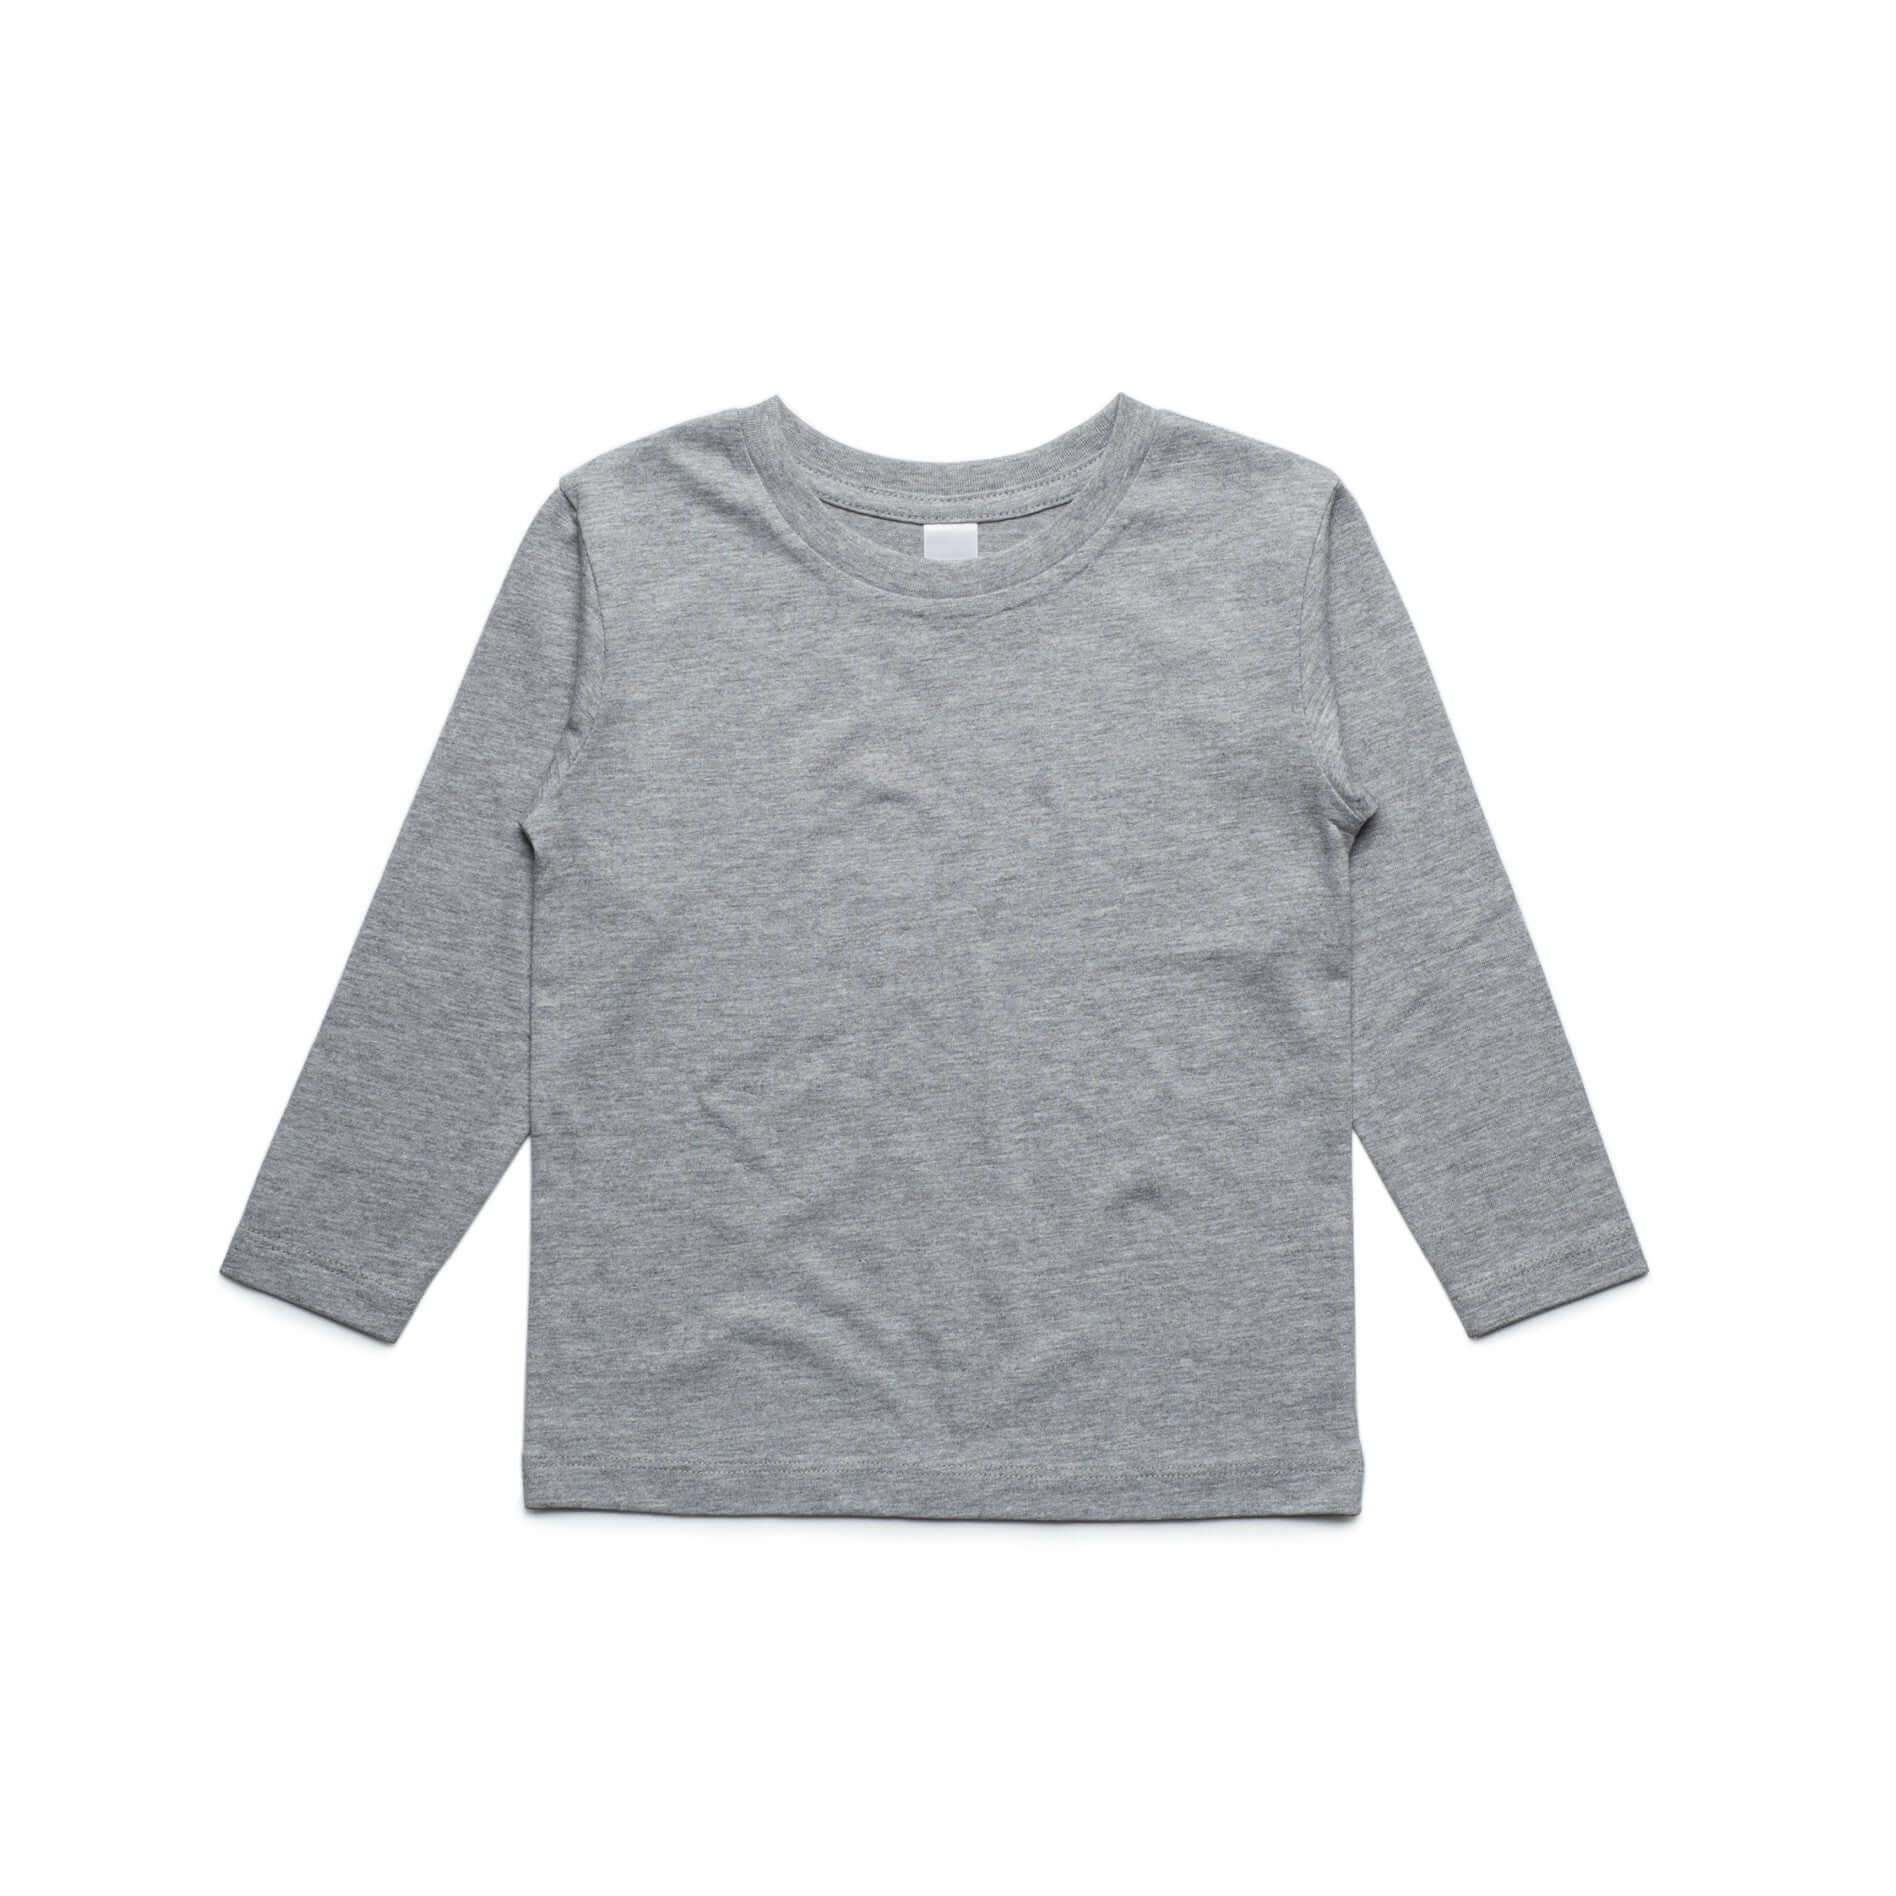 AS Colour Kids Cotton Long Sleeve Basic Tee Shirt White, Black and Grey Marl - Frankie's Story - 3